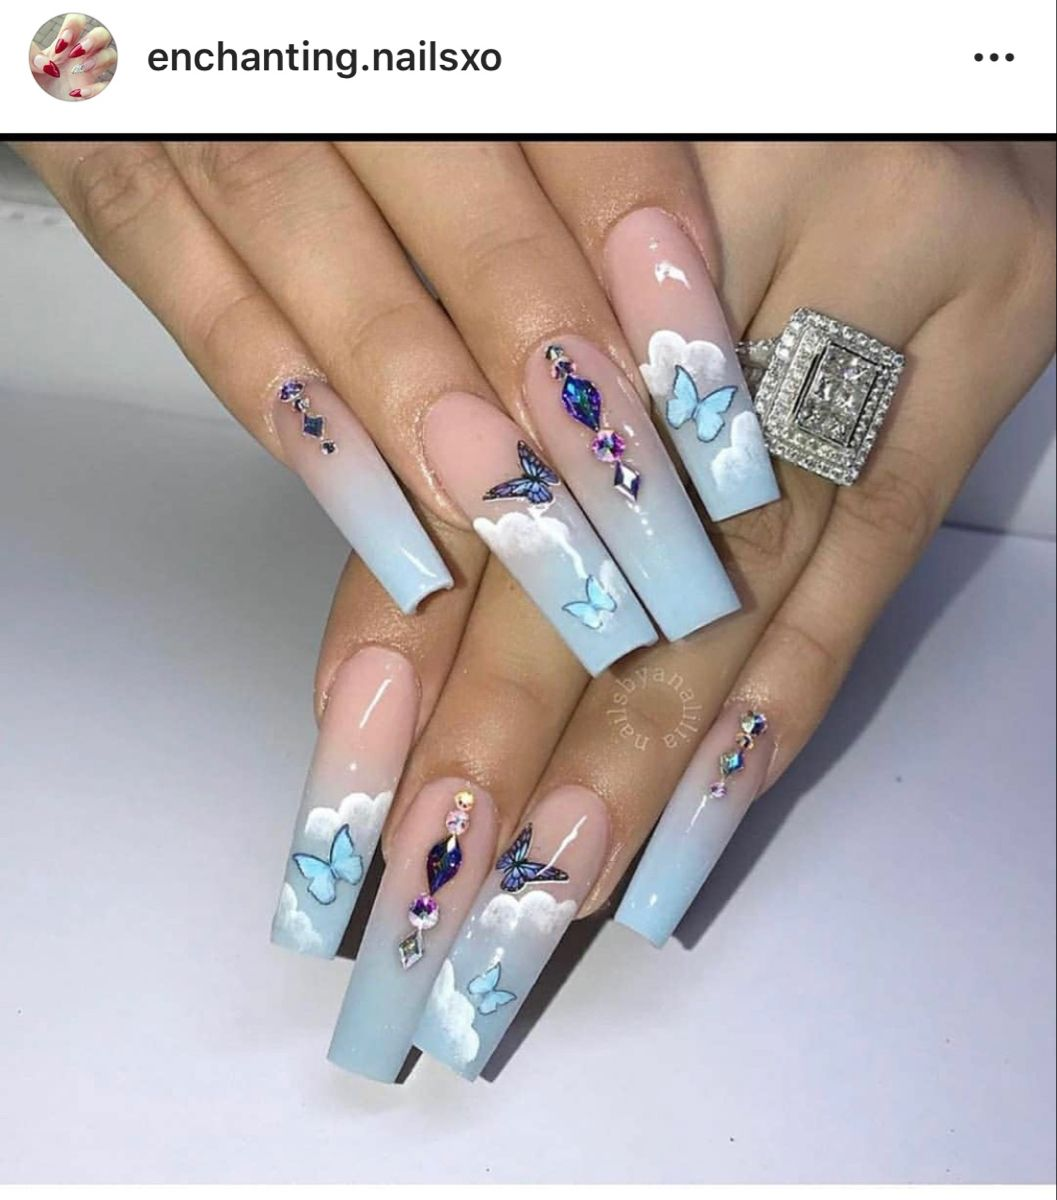 Butterflies In The Clouds In 2020 Blue Acrylic Nails Cute Acrylic Nail Designs Best Acrylic Nails